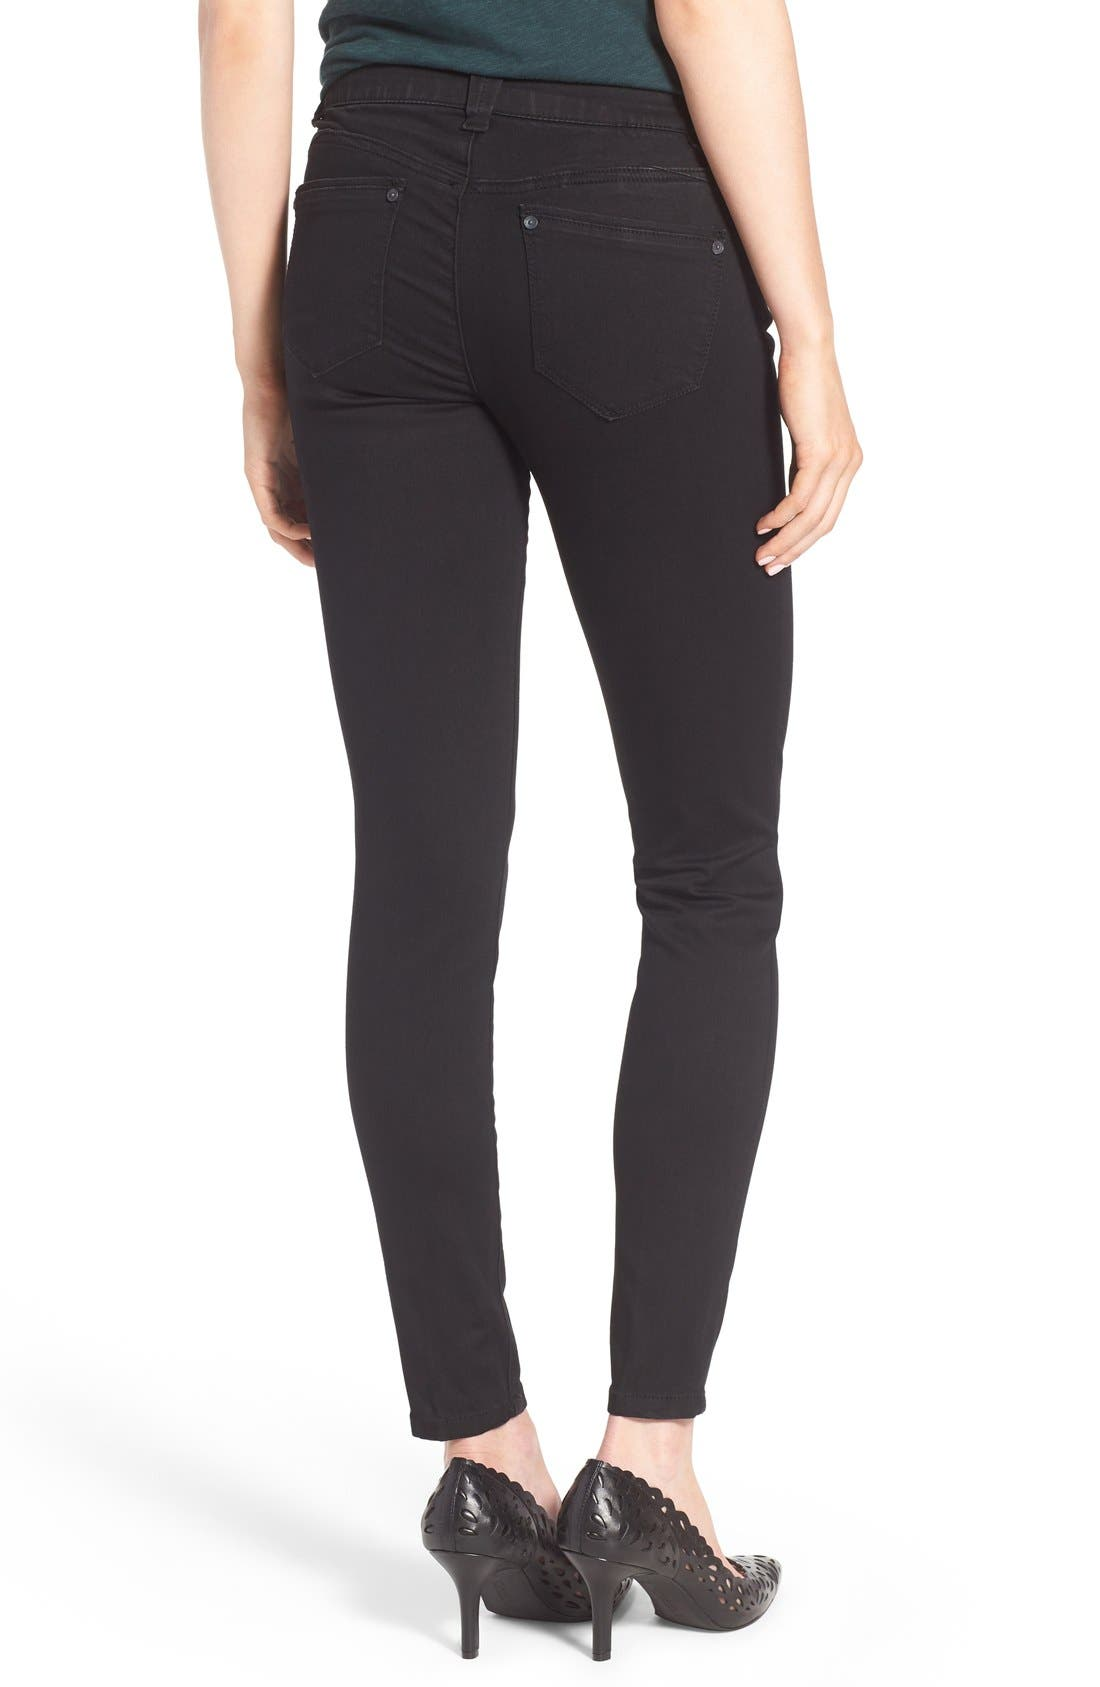 Ab-solution Stretch Skinny Jeans,                             Alternate thumbnail 4, color,                             BLACK